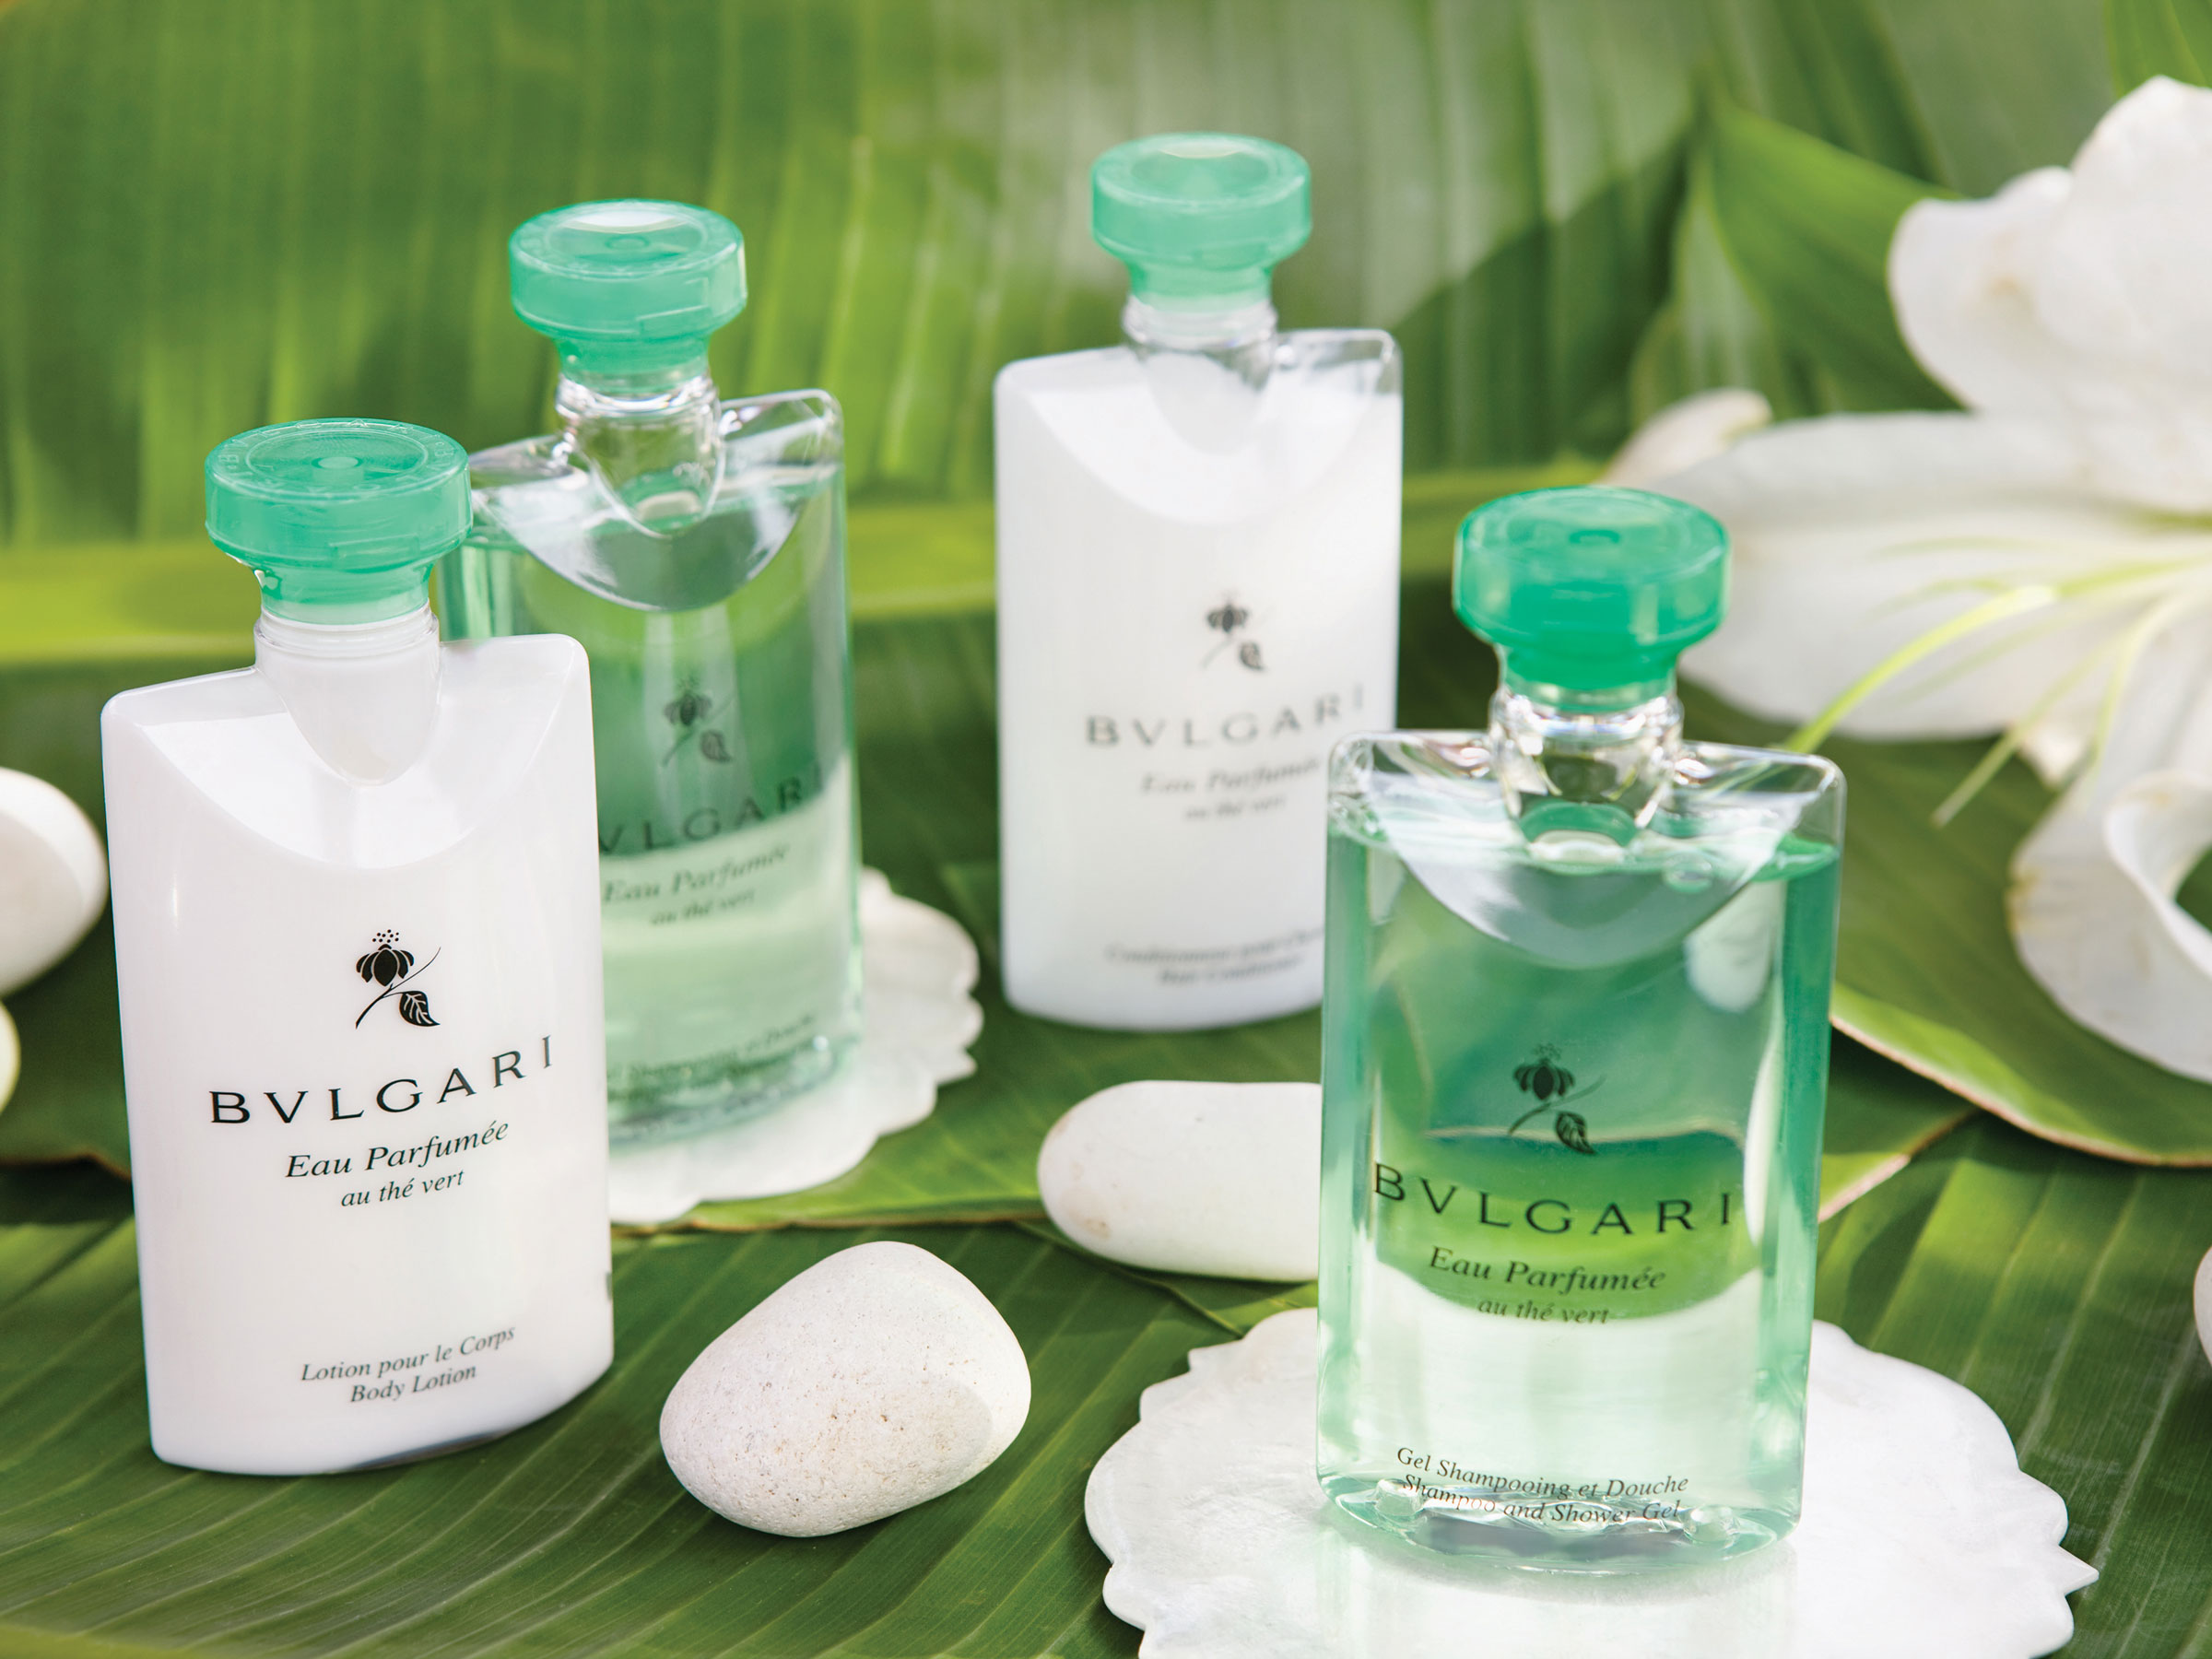 Bulgari Amenities at Our Adults Only All Inclusive Resort Category in the Caribbean